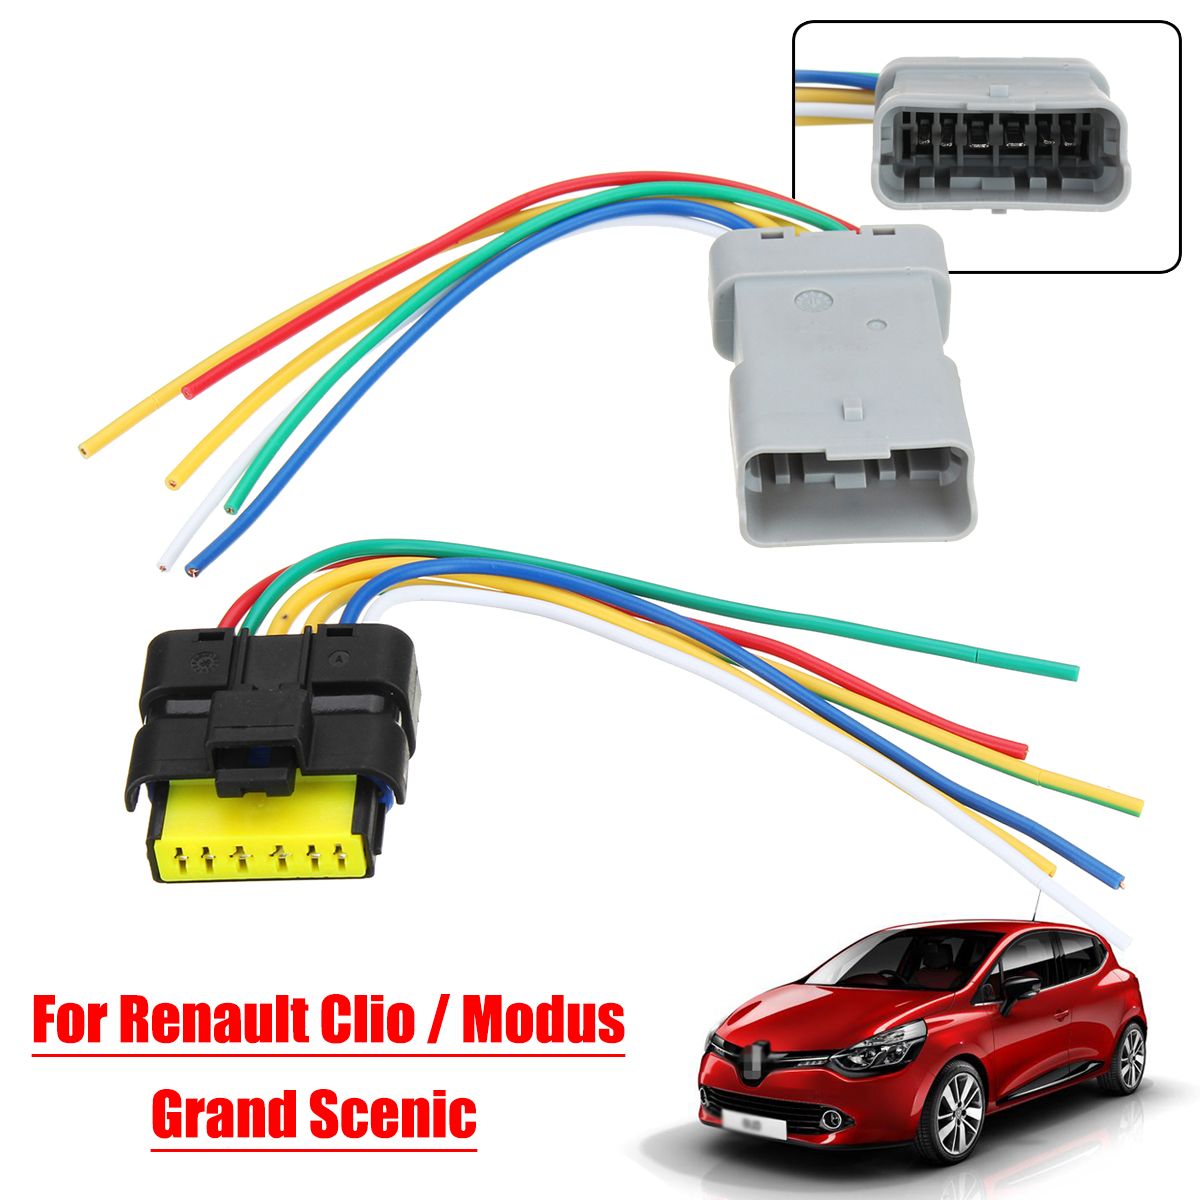 Aliexpress Com   Buy 1set Window Module Wiring Ponytail Harness Plastic Plug For Renault Clio